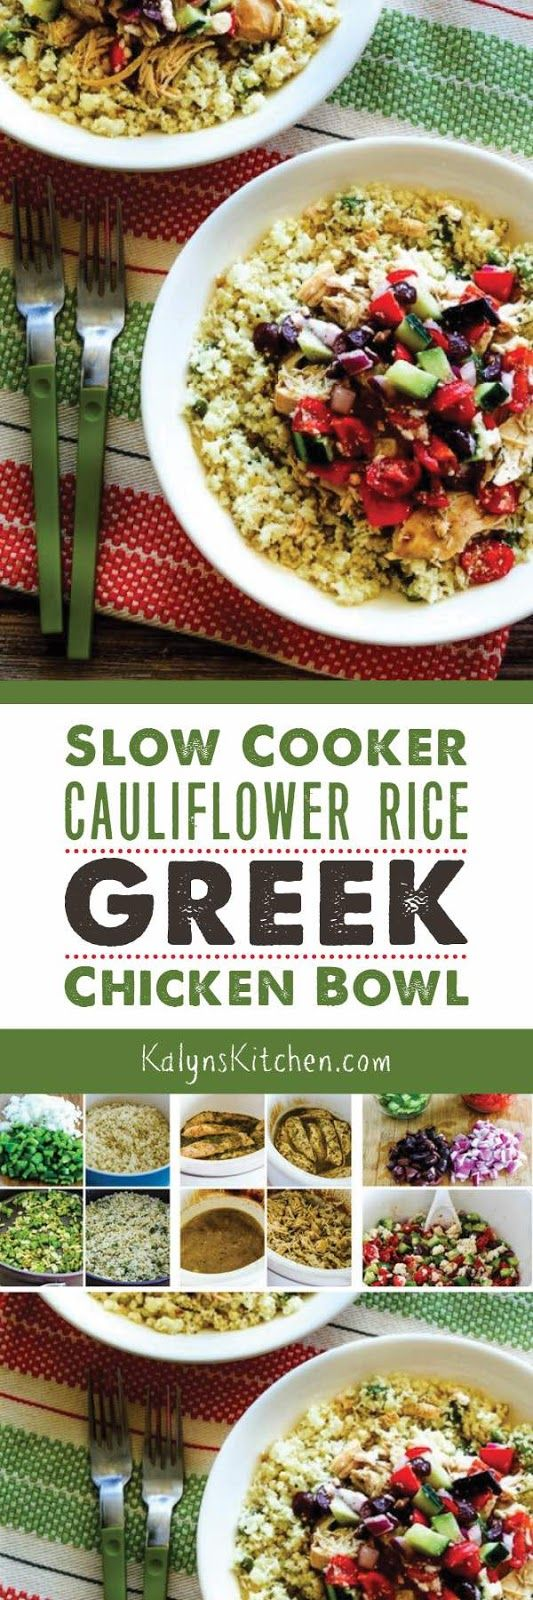 Slow Cooker Cauliflower Rice Greek Chicken Bowl is a tasty low-carb meal that's good any time of year, and this delicious slow cooker meal is also gluten-free, South Beach Diet friendly, and if you omit cheese it can easily be Paleo or Whole 30! [found on KalynsKitchen.com]: